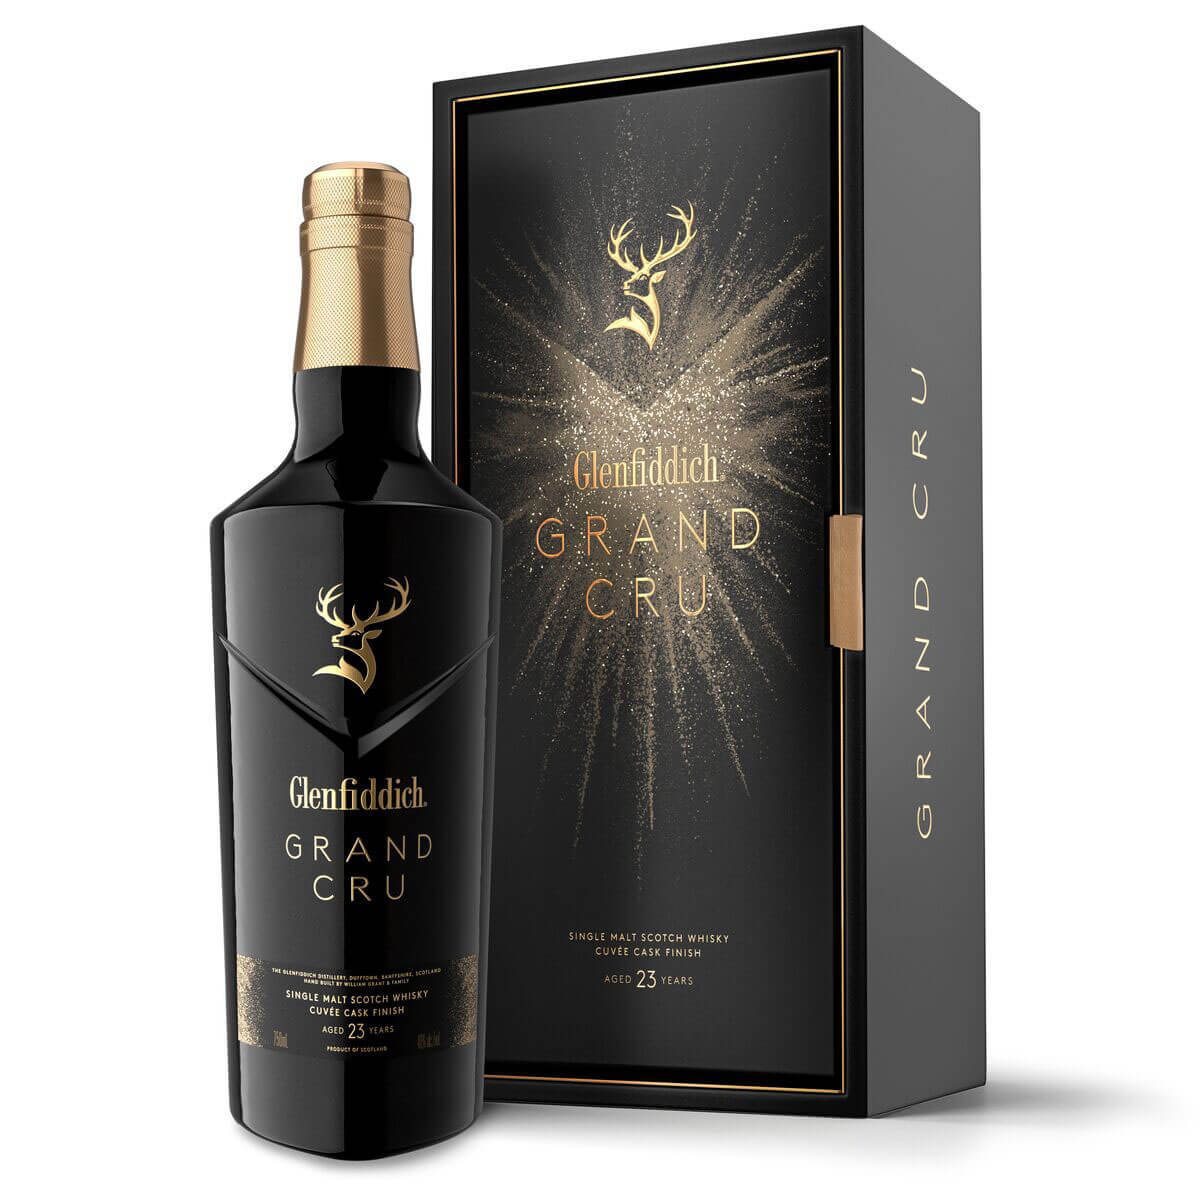 Glenfiddich Grand Cru, bottle and package on white